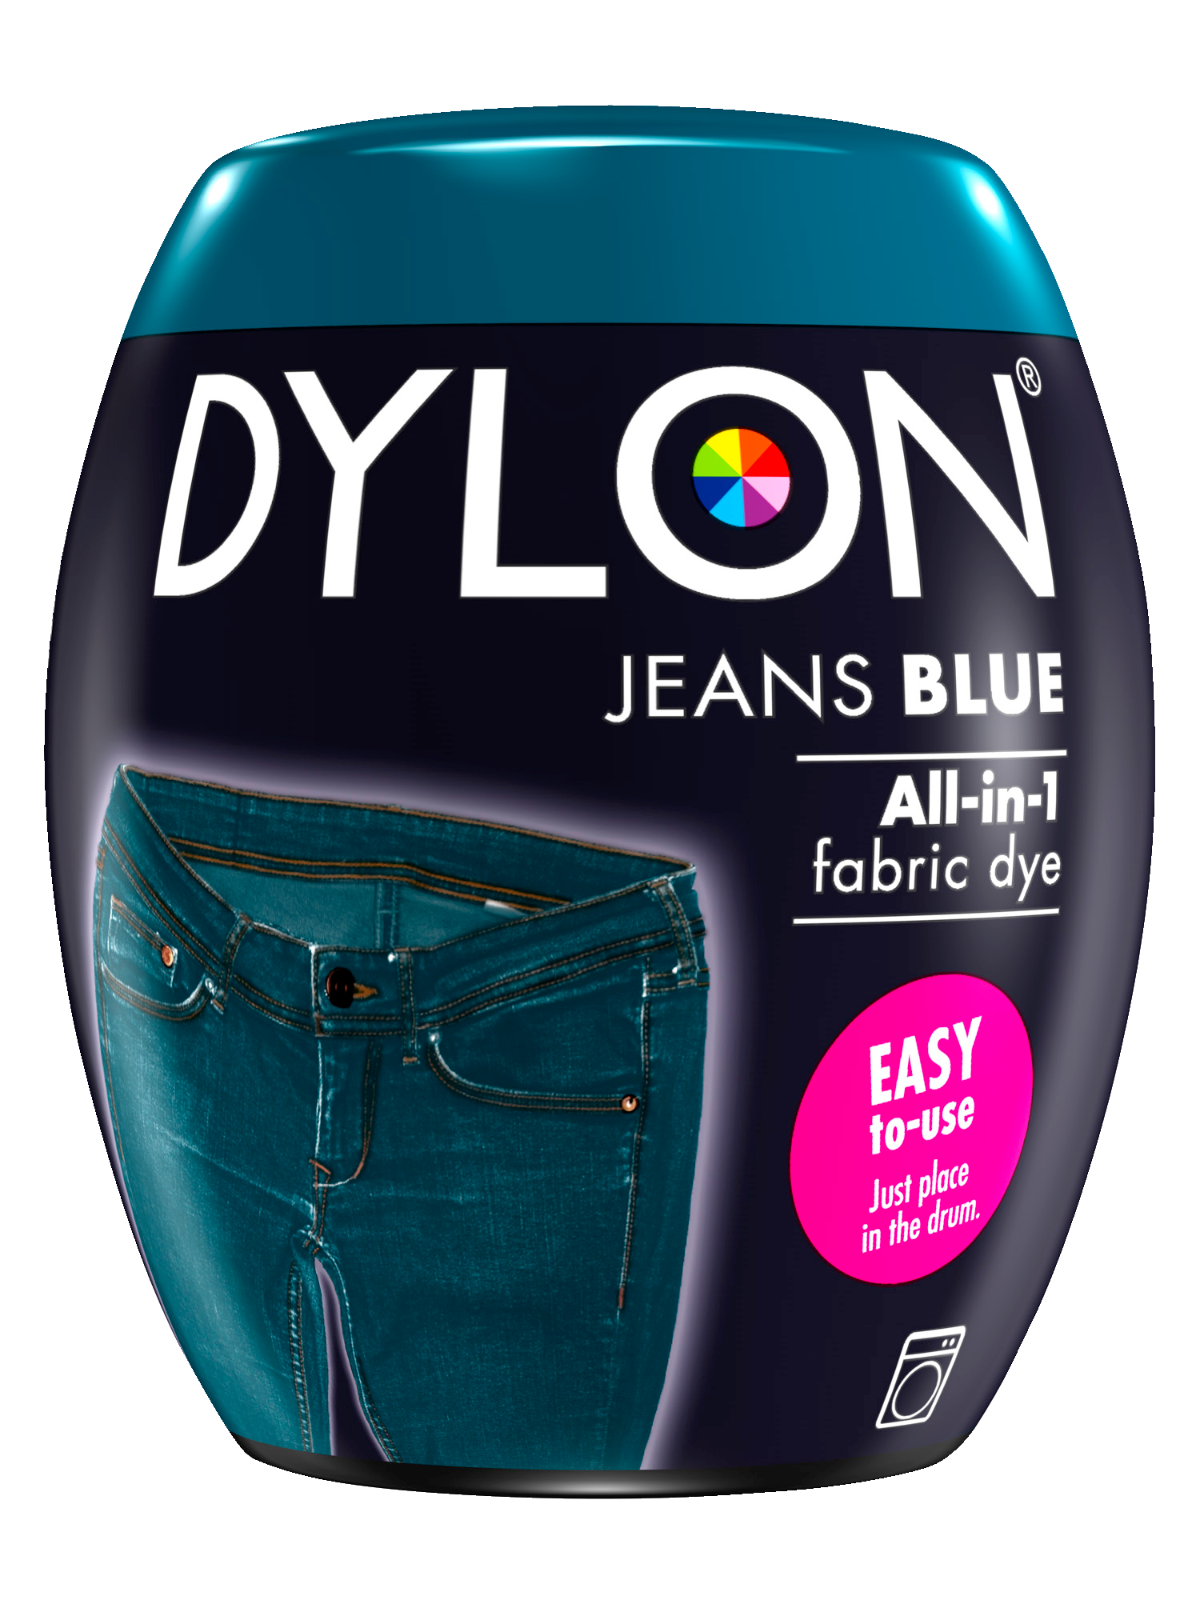 Jeans Blue Dylon Dye from Pearls in Acton London